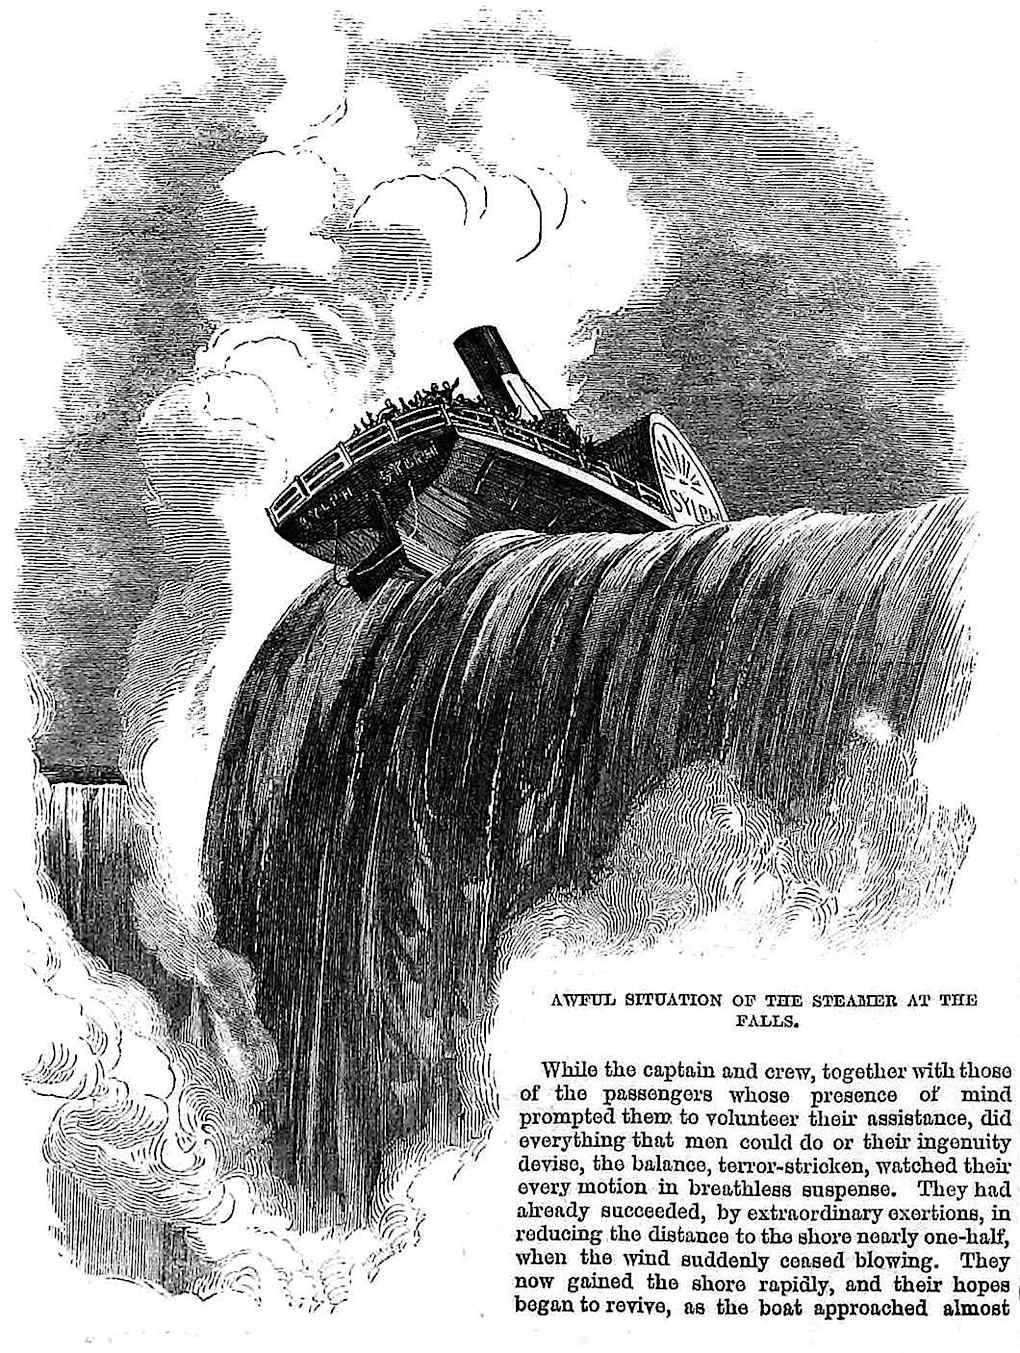 1864 Niagara Falls disaster incident, steamer at the edge of the falls